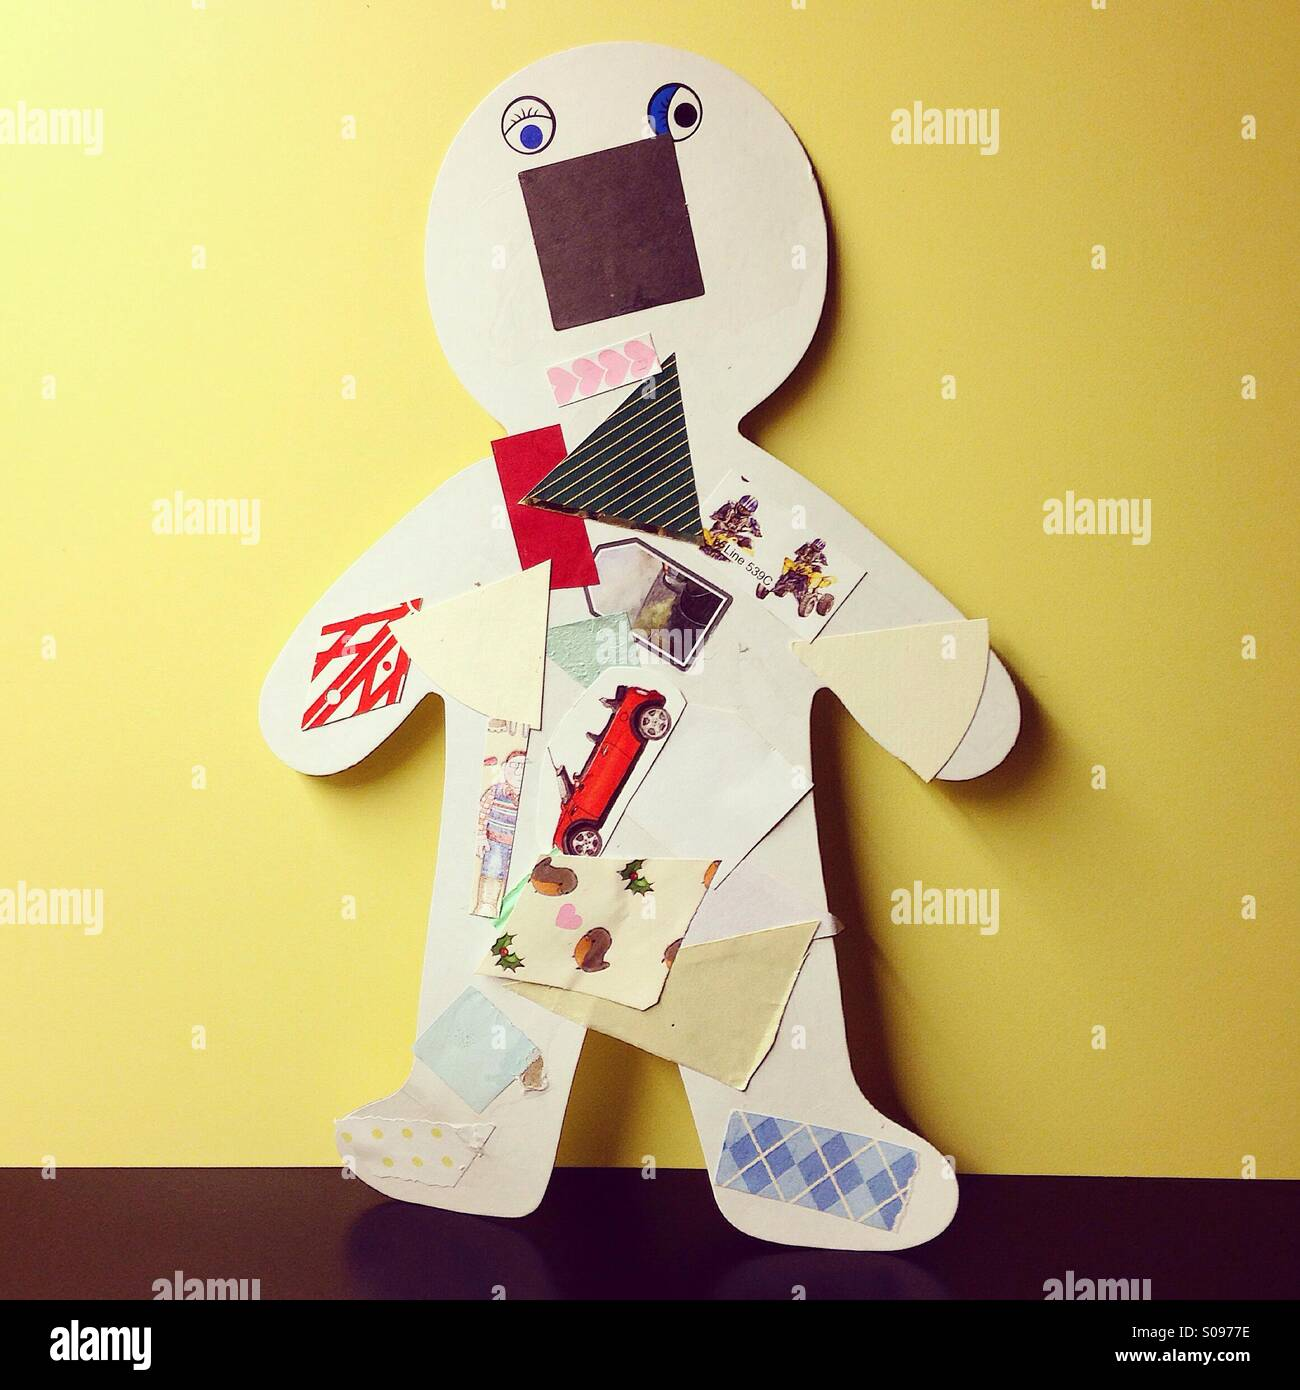 Child's nieve collage using cut out paper and shapes. - Stock Image